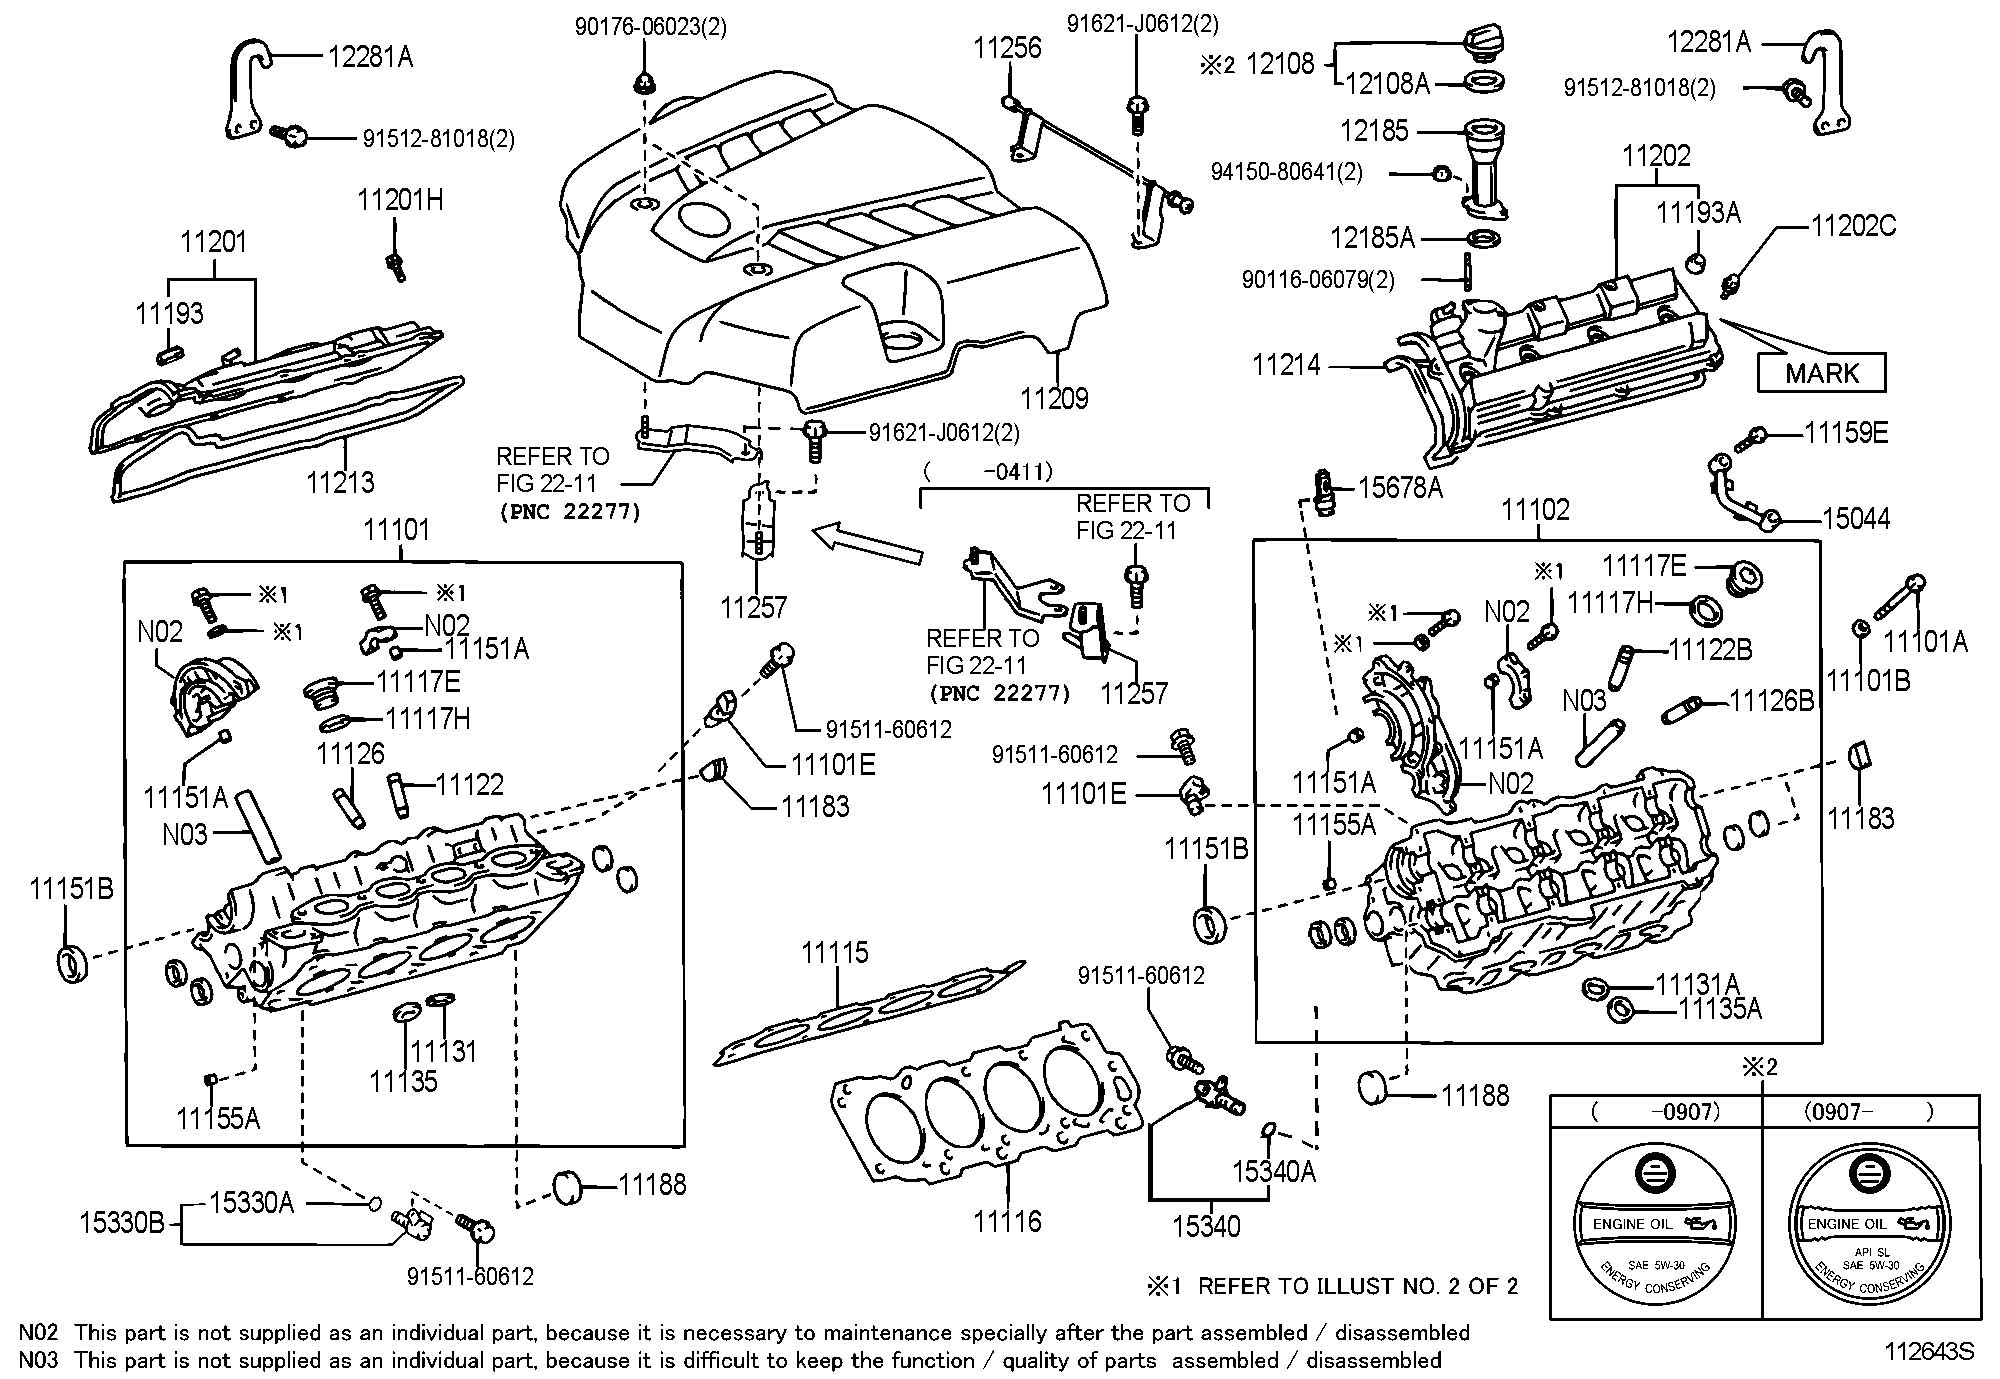 Lexus Gs350 Engine Diagram, Lexus, Free Engine Image For